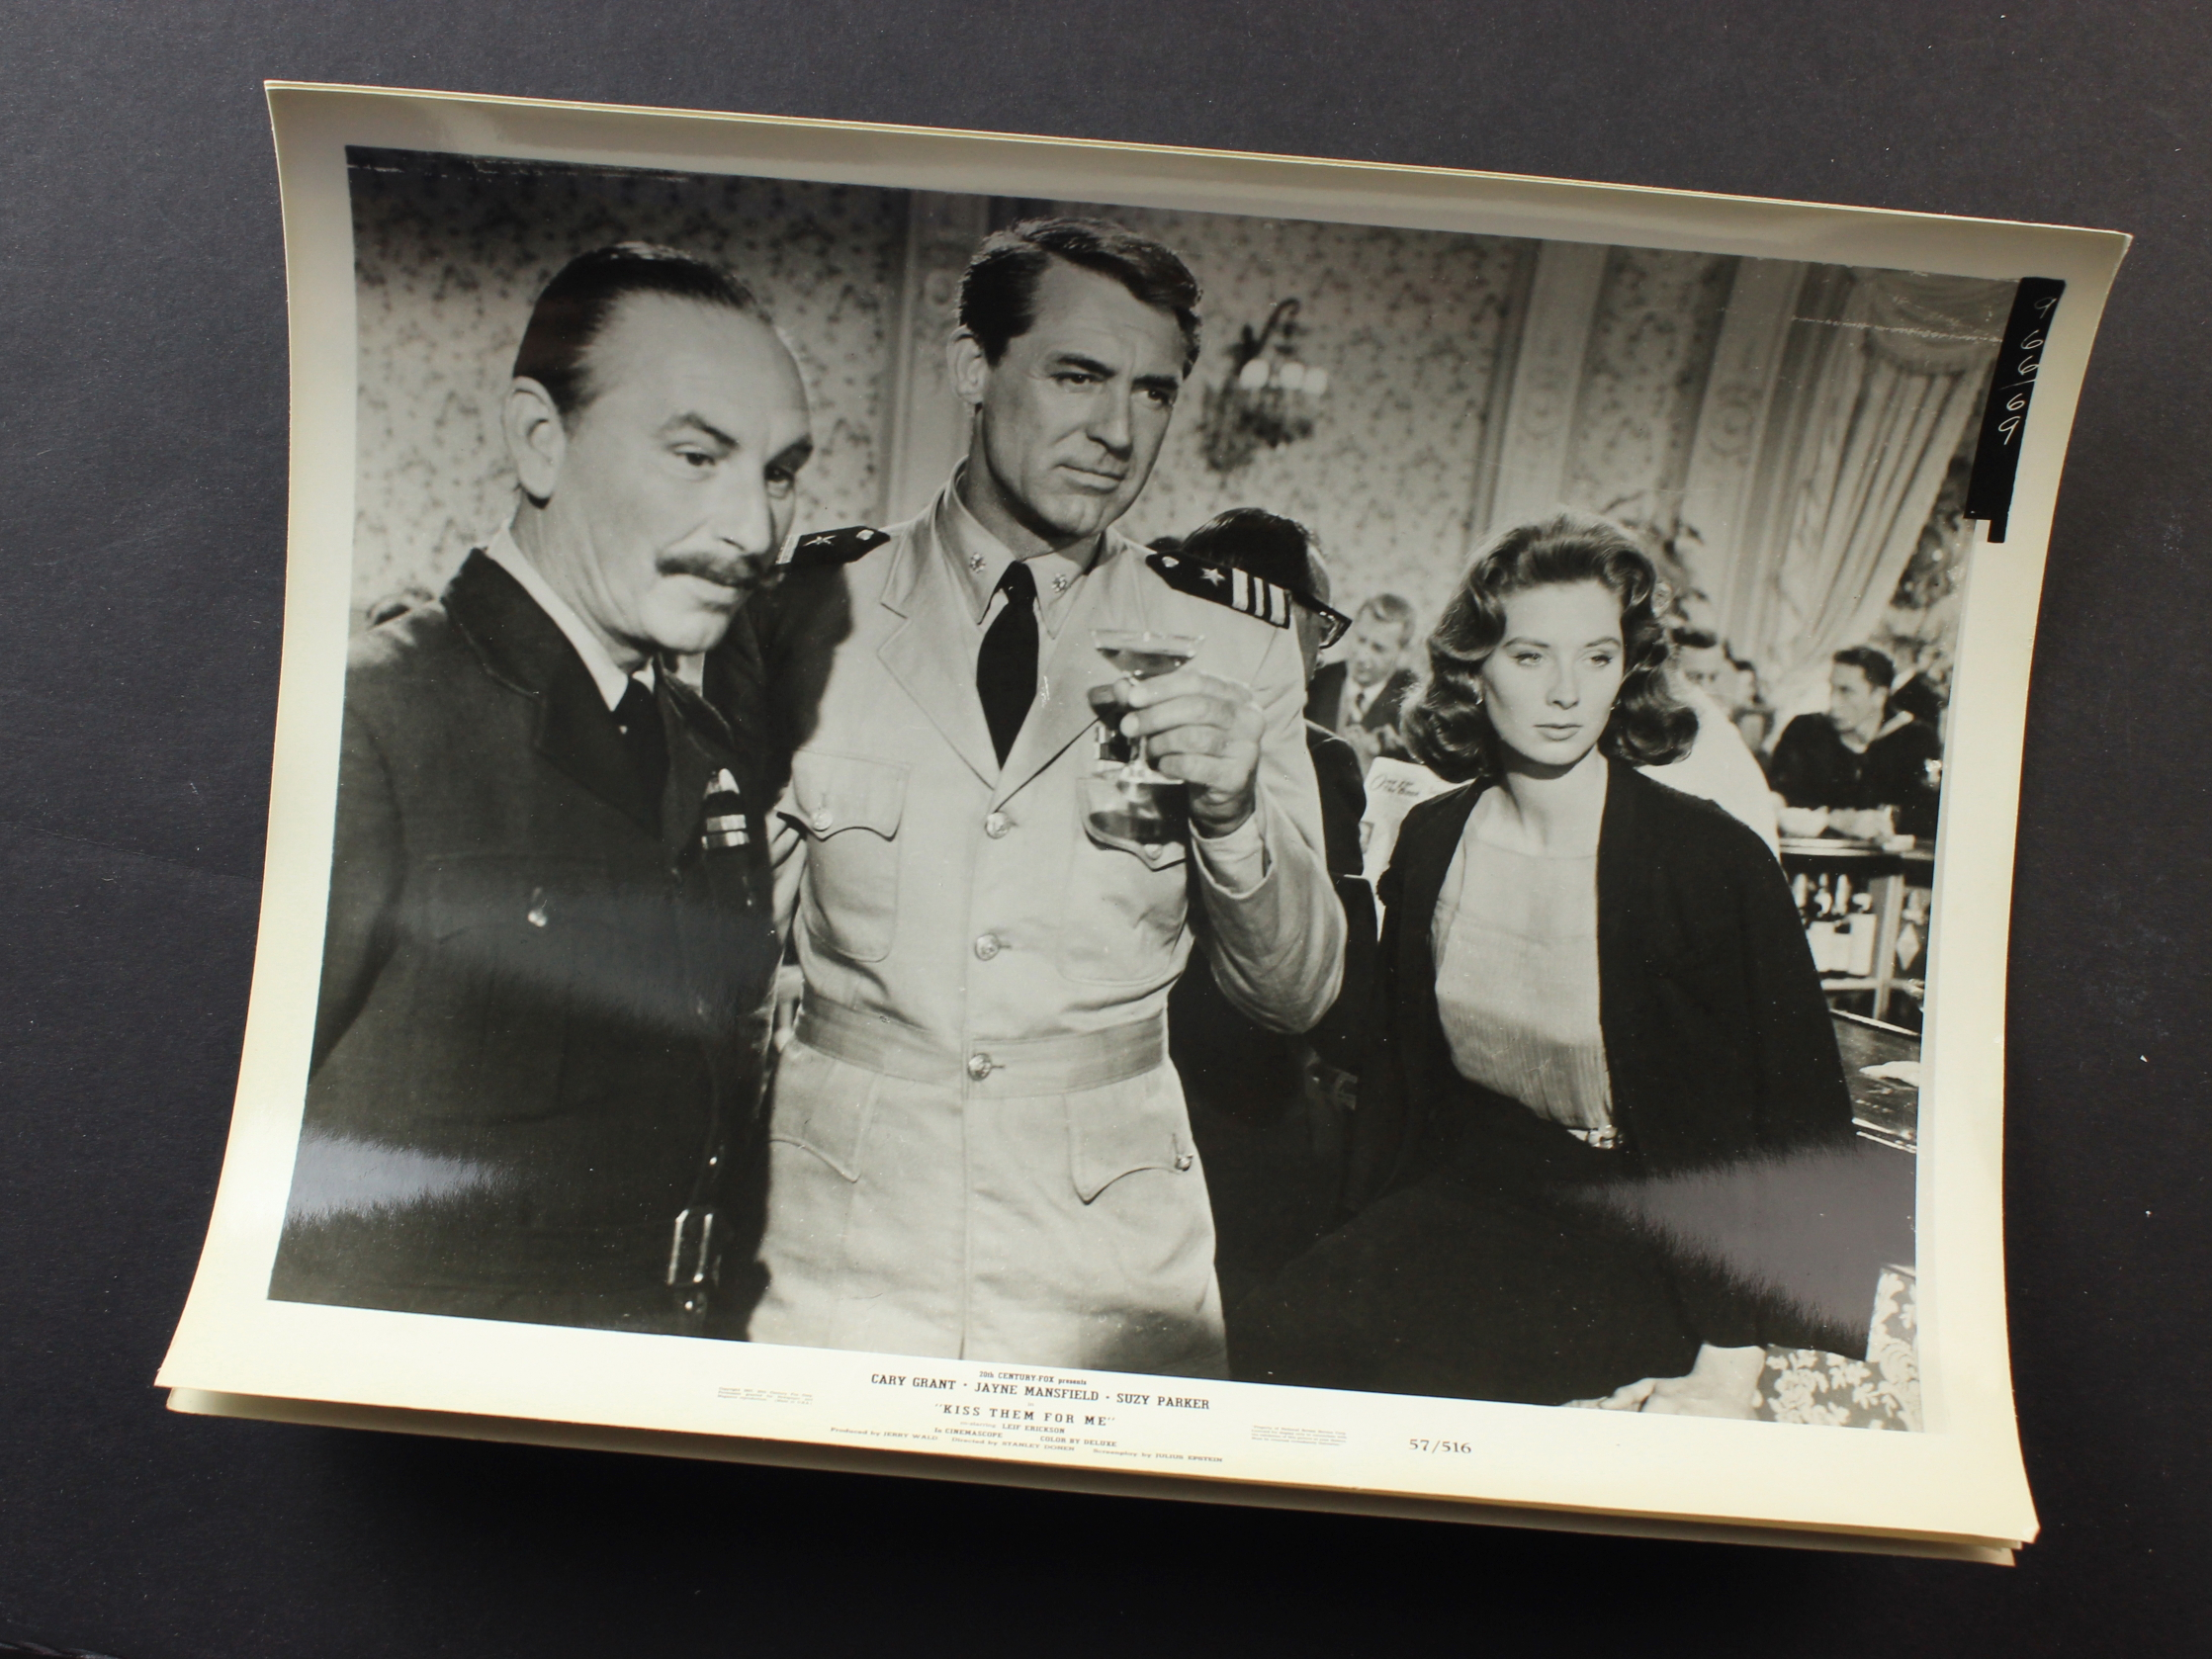 Cary Grant, George Nardelli, and Suzy Parker in Kiss Them for Me (1957)